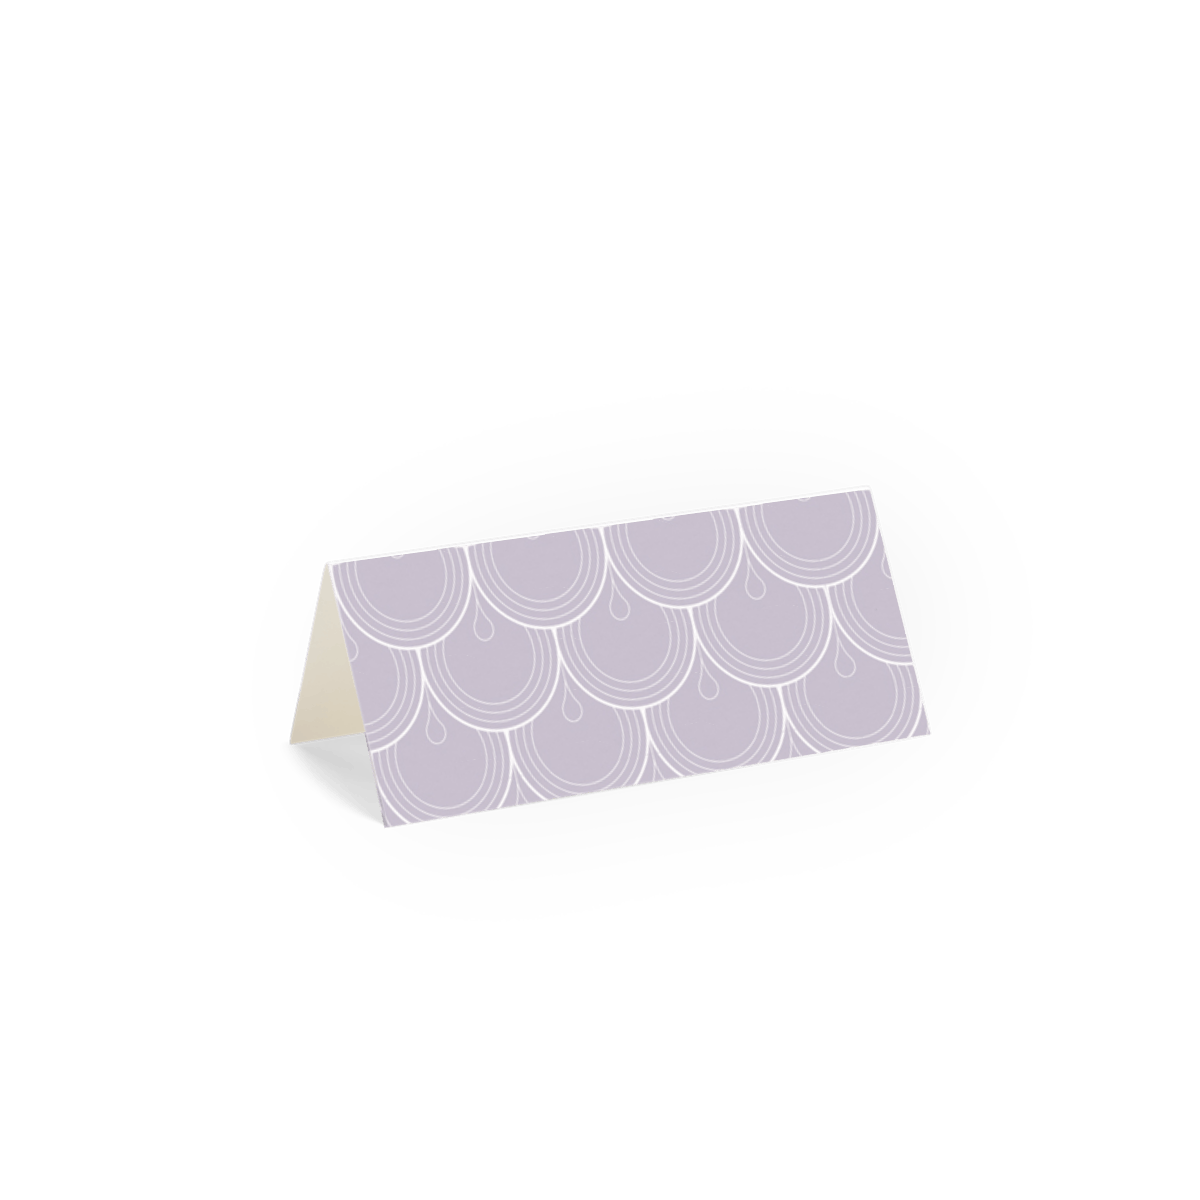 Https%3a%2f%2fwww.papier.com%2fproduct image%2f12836%2f15%2fdeco purple scallop 3230 back 1477493405.png?ixlib=rb 1.1